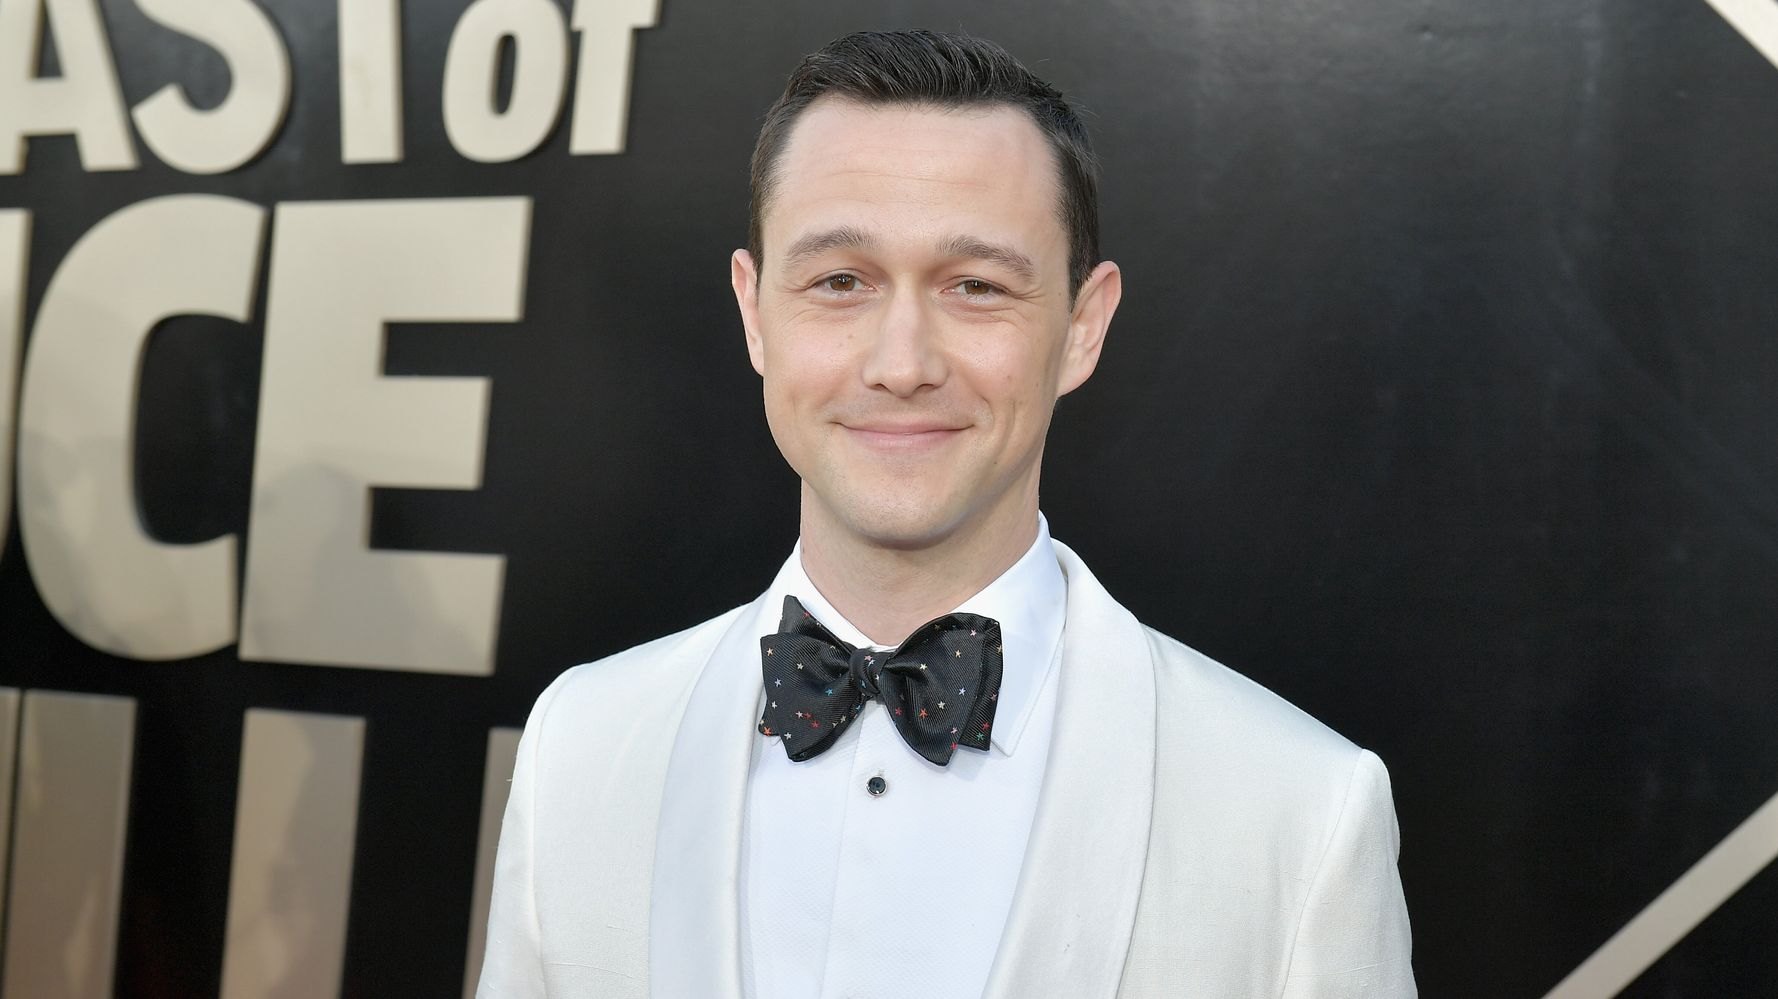 10 Lovely Quotes About Parenthood From Joseph Gordon-Levitt